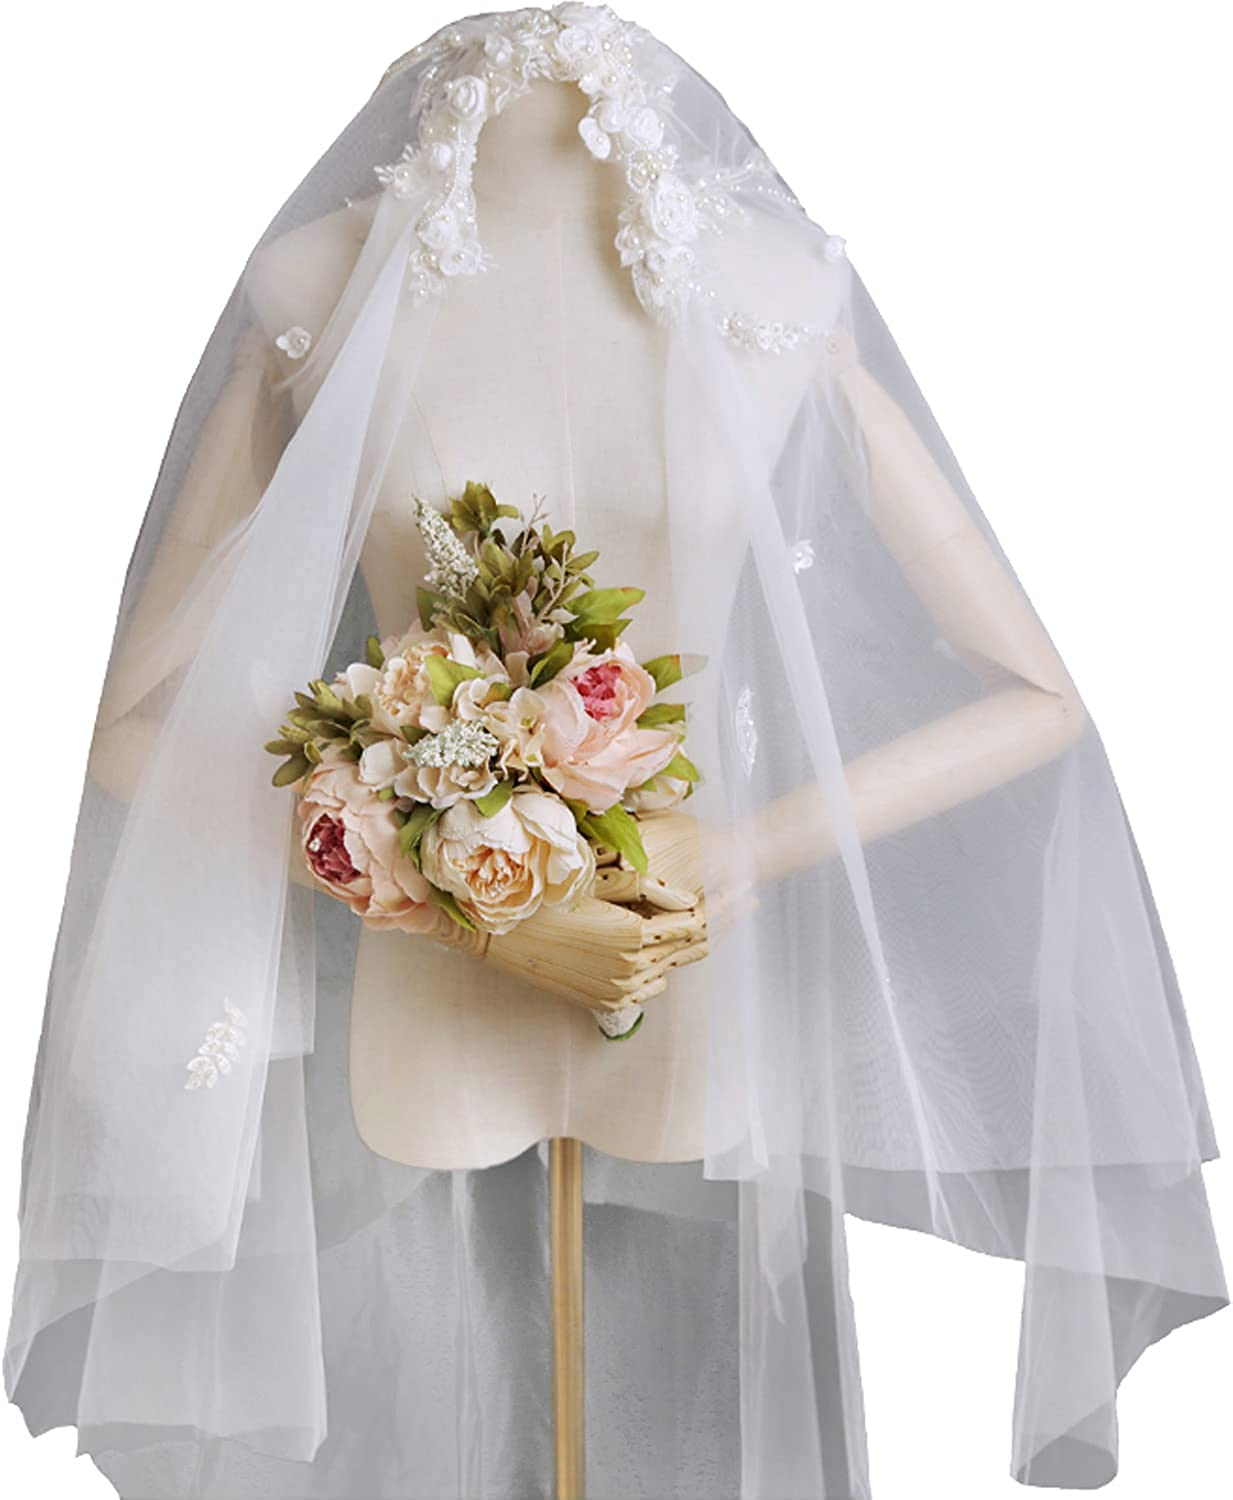 Vintage Lace Bridal Veil Handmade Flower Pearls Two Layers Bridal Accessories for Bride